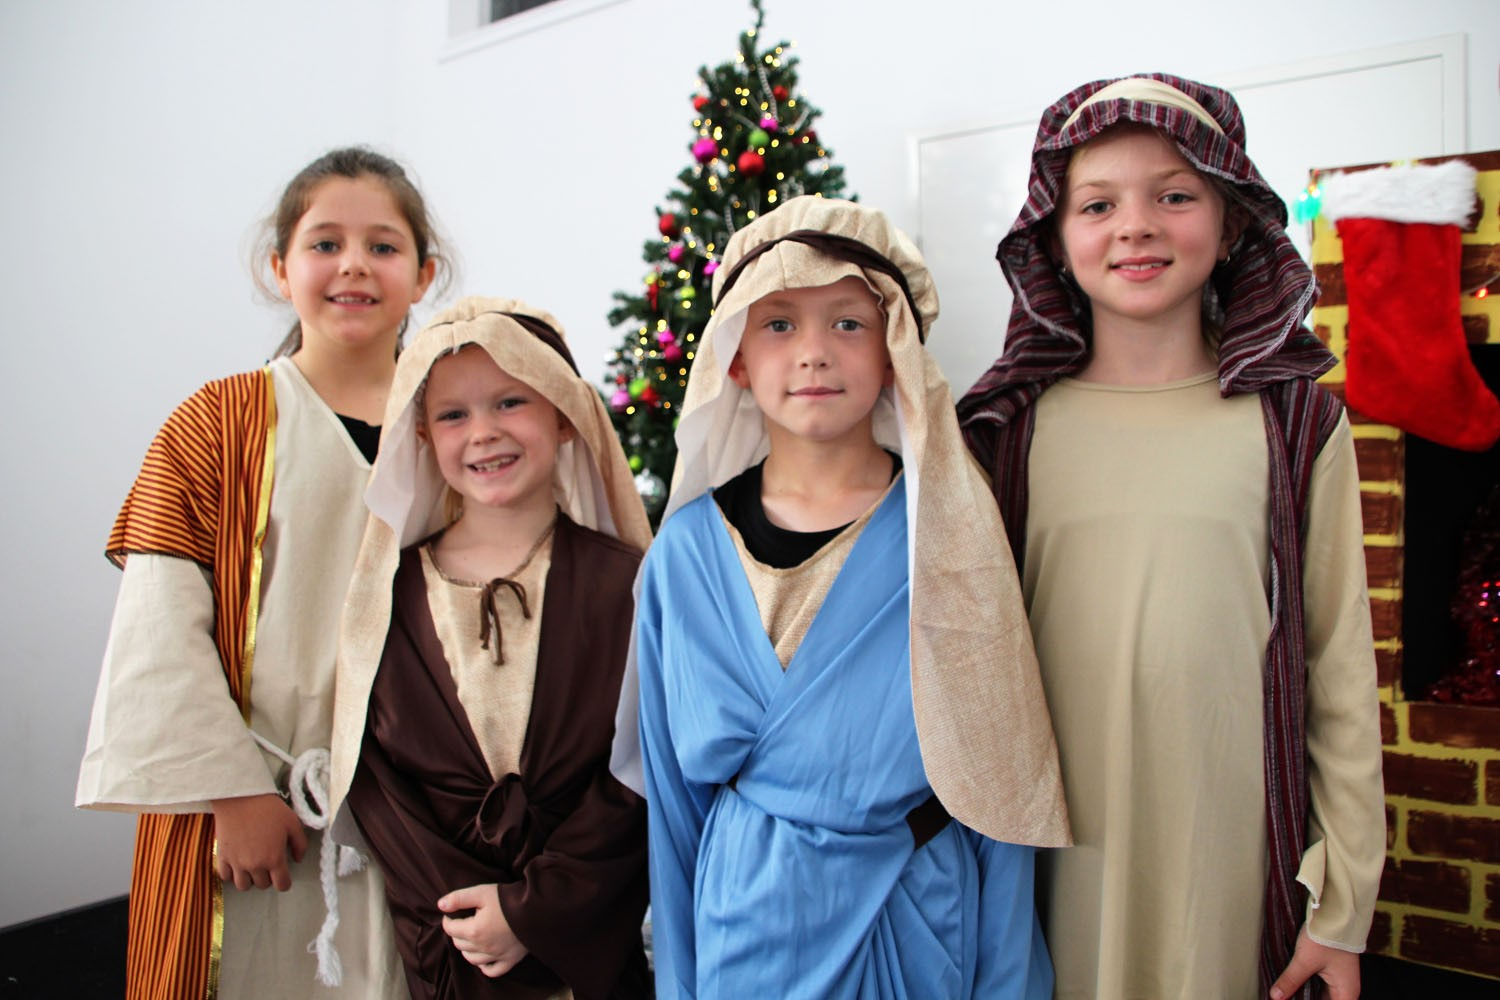 Image:St Michael's students captivate audience with Christmas Toy Story musical